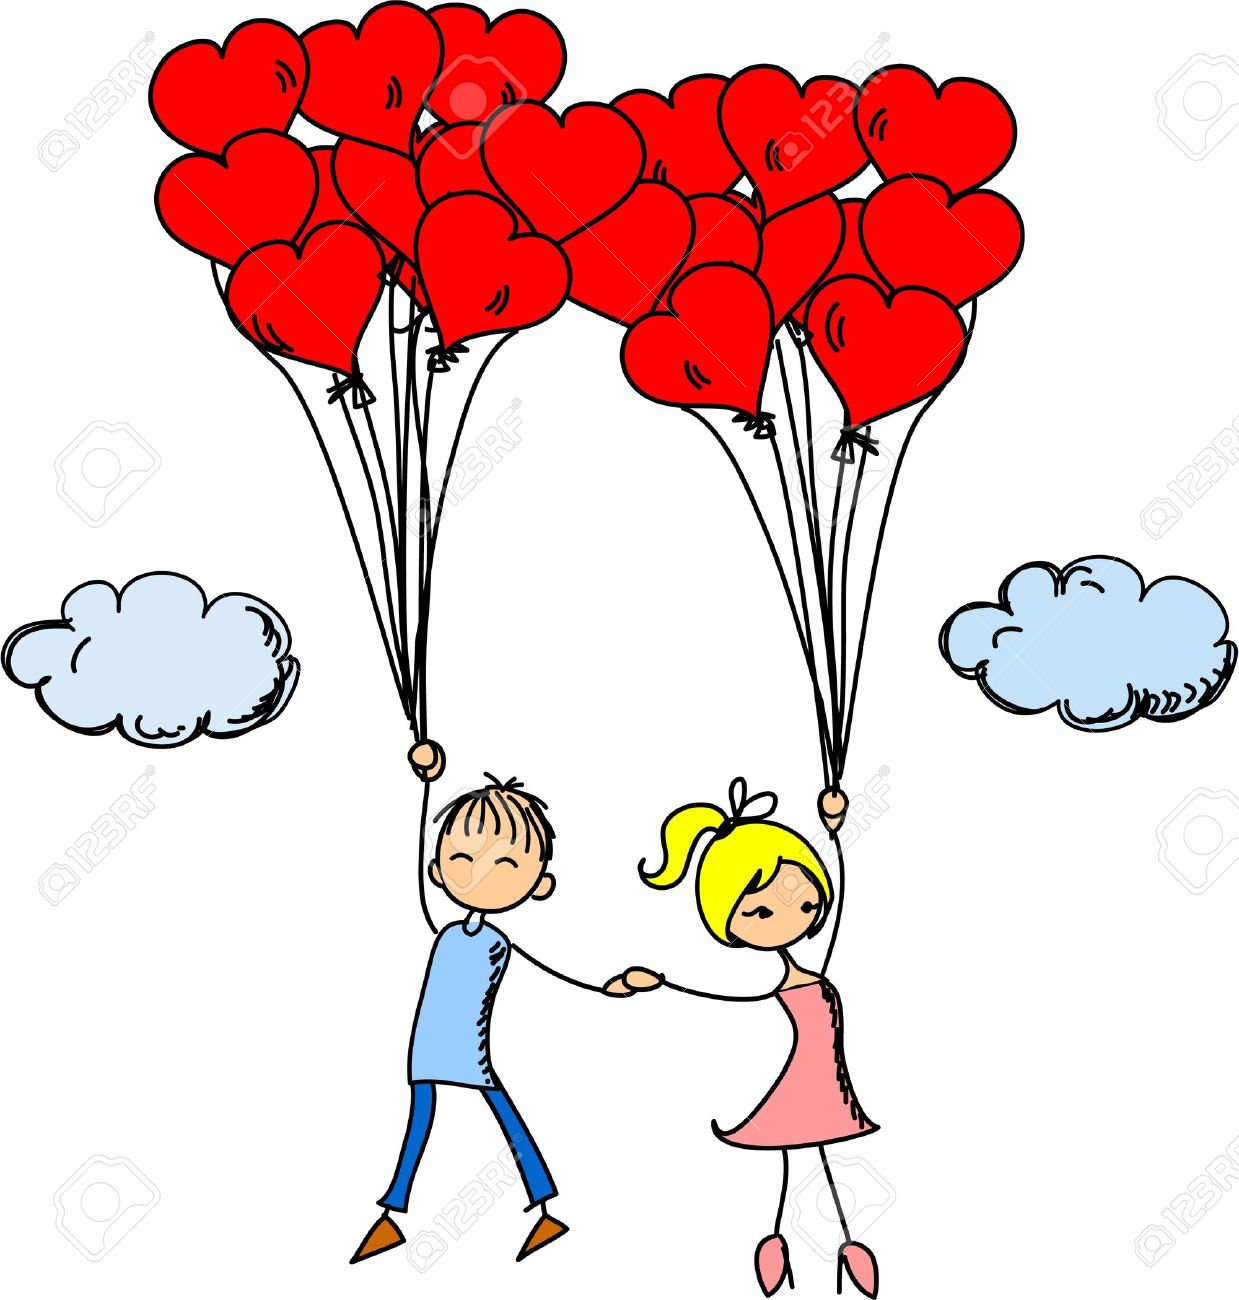 In love clipart clipart.